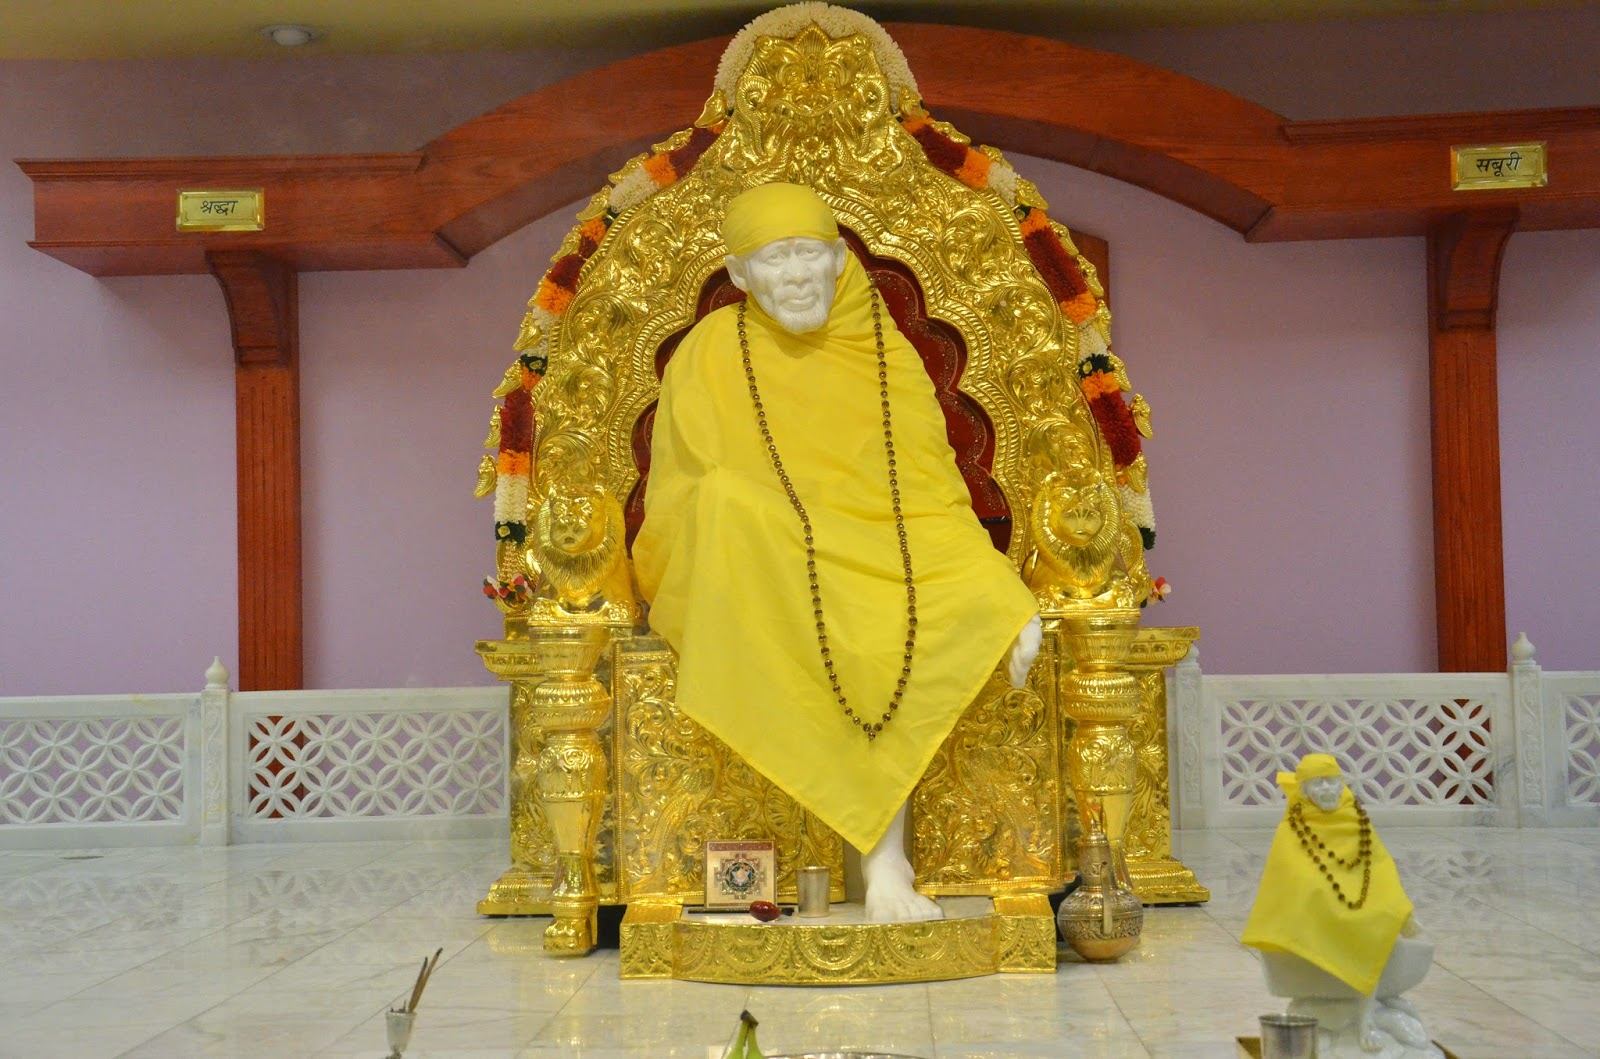 Hd wallpaper sai baba - Lord Sai Baba Real Photos In Temple Wallpapers